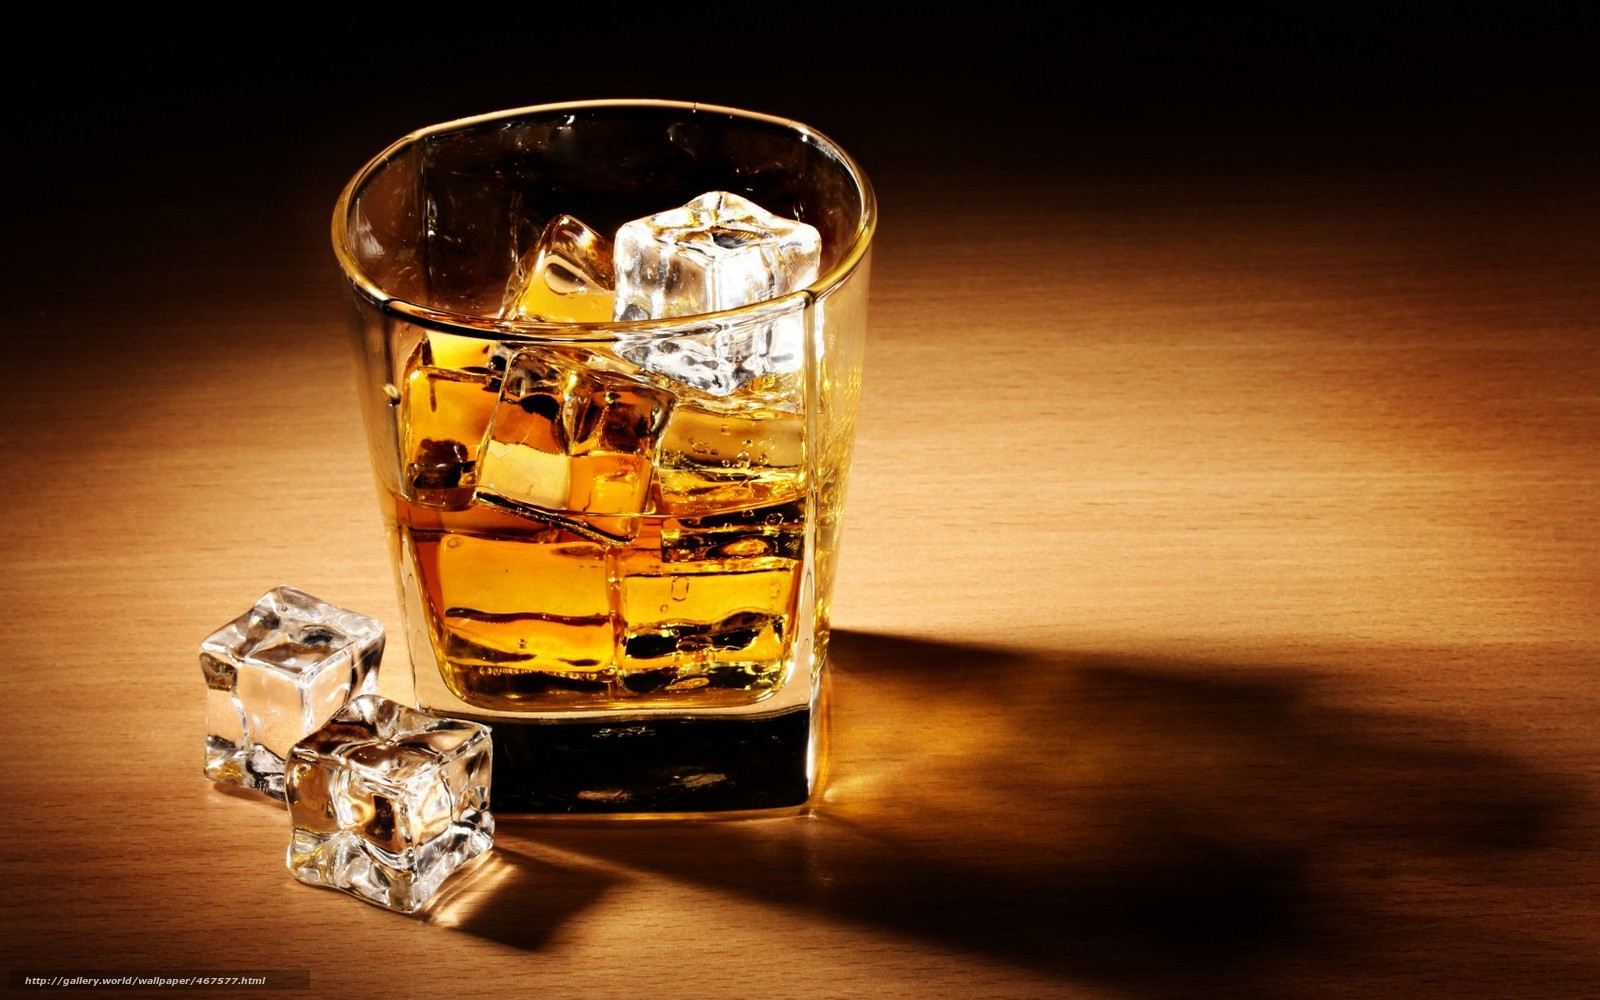 Download wallpaper whiskey,  drink,  alcohol,  ice free desktop wallpaper in the resolution 1680x1050 — picture №467577